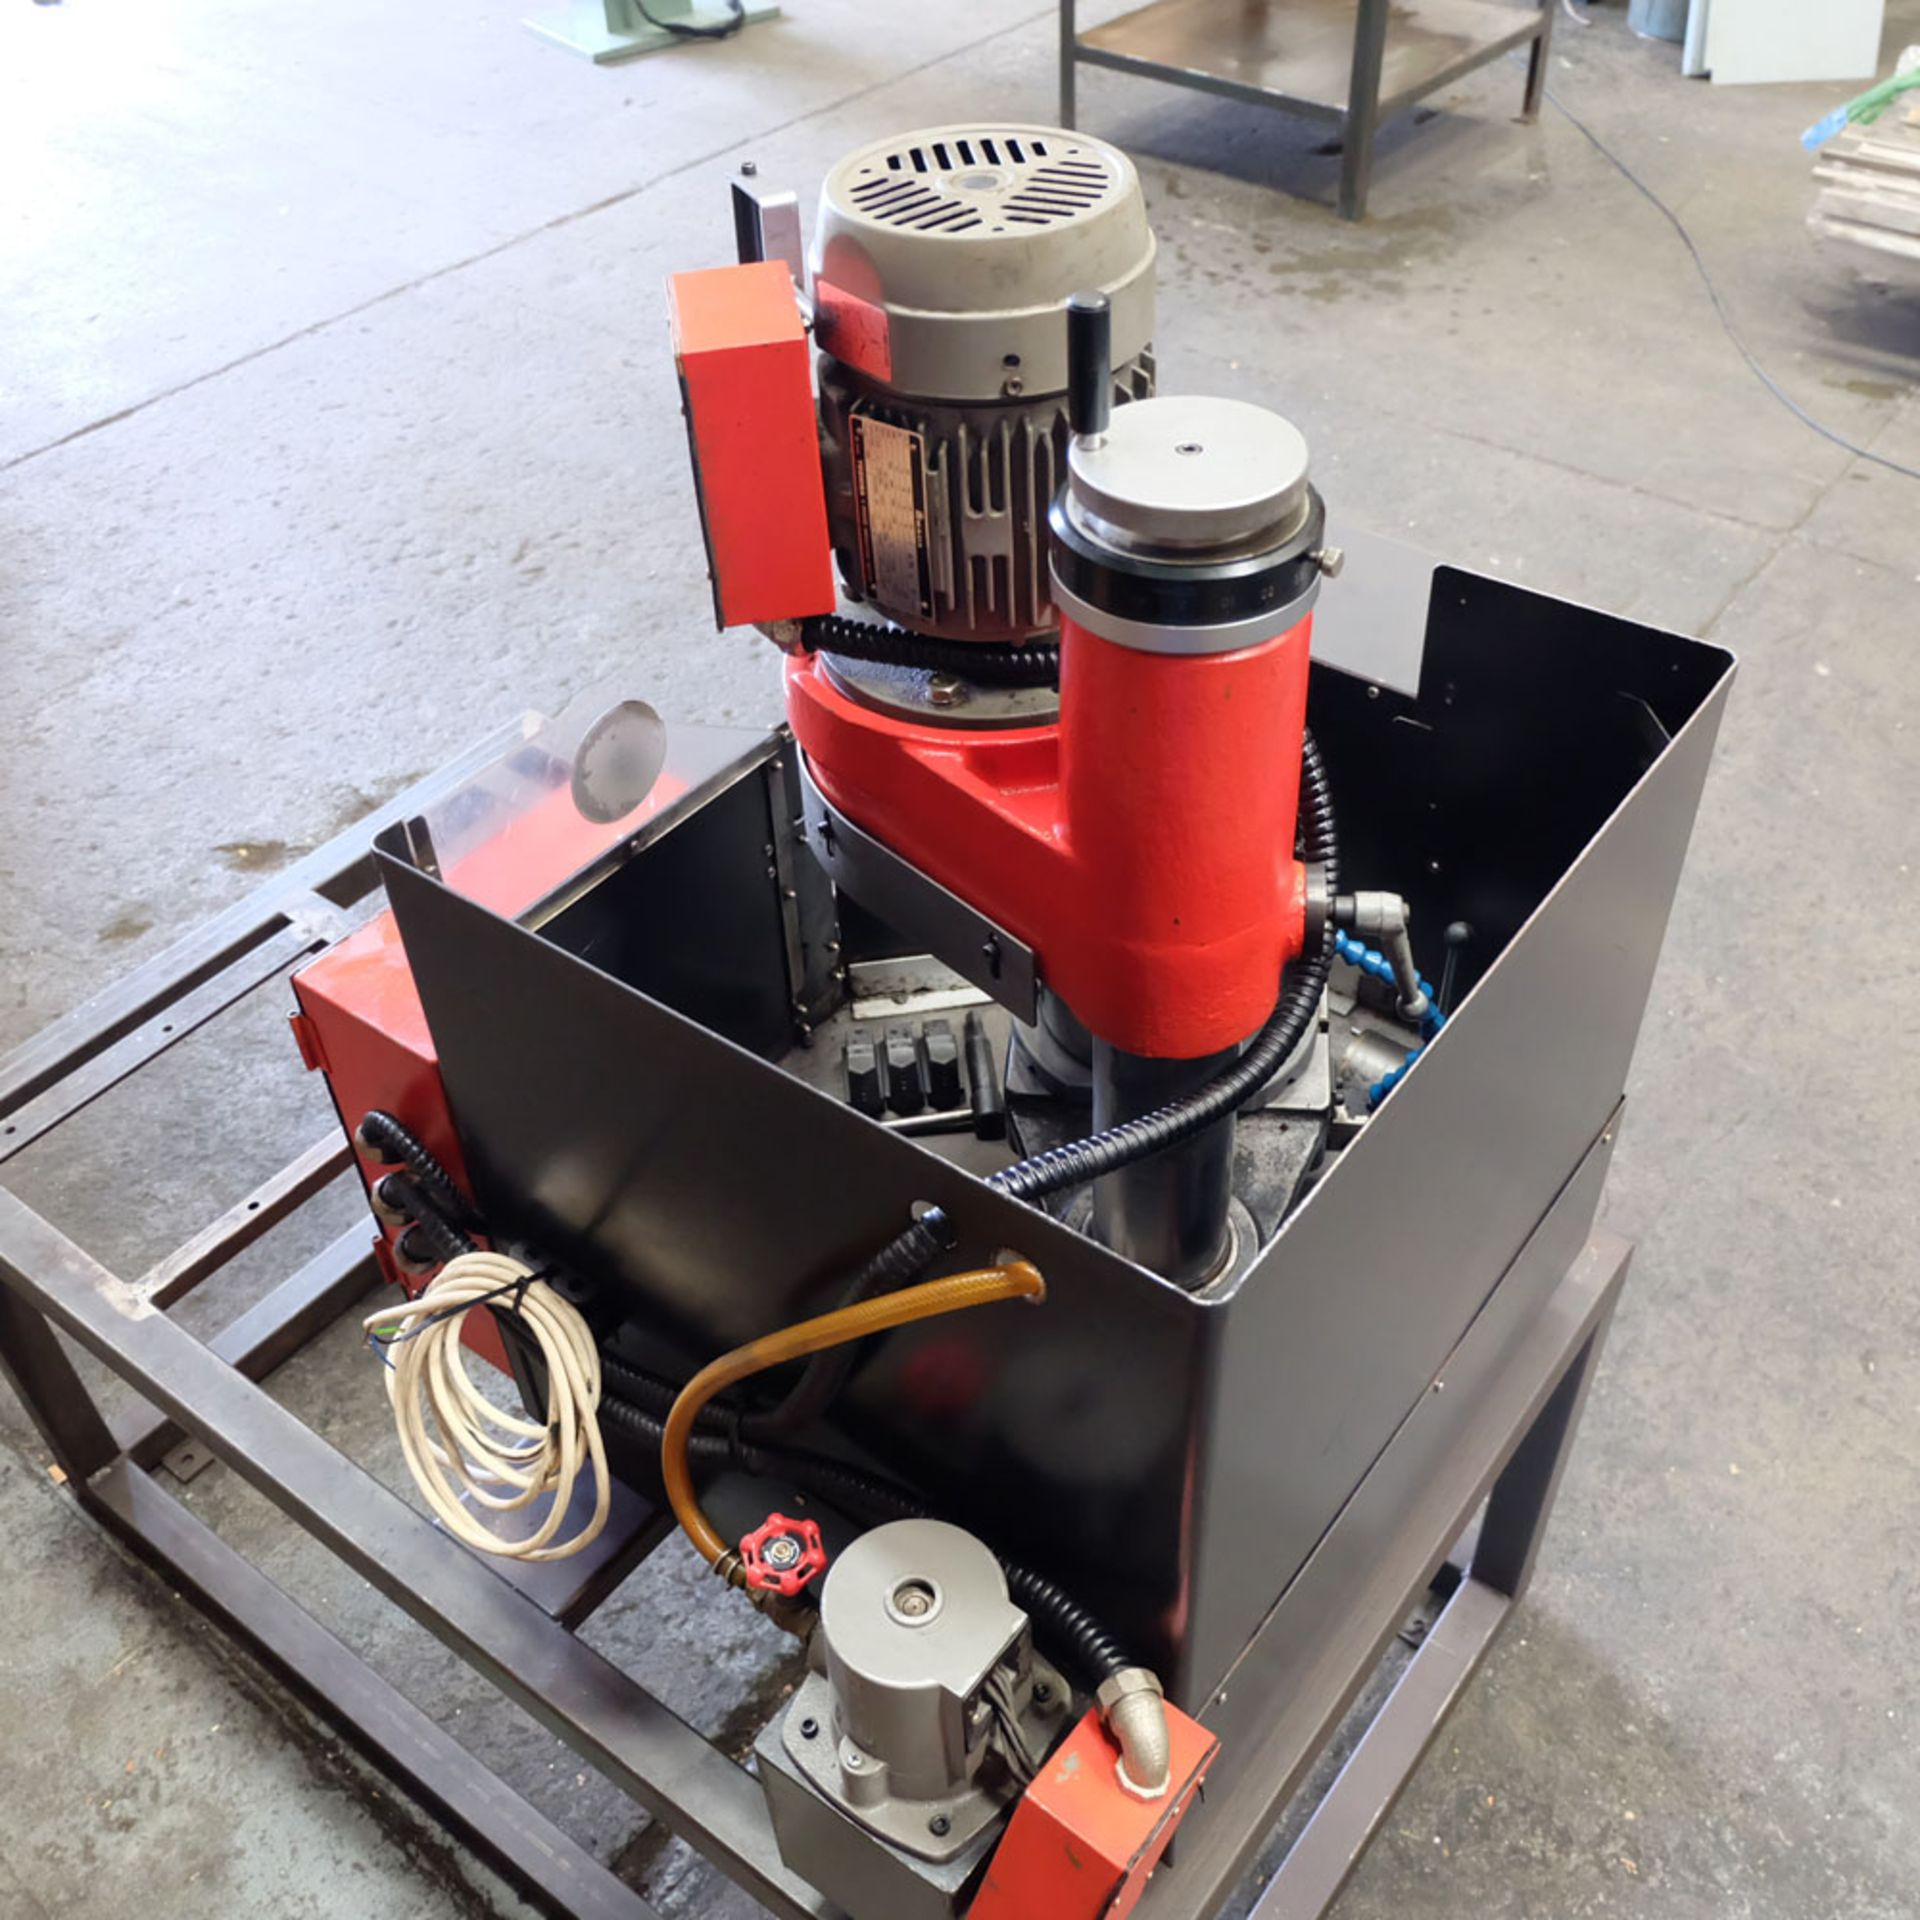 Amada TEG 160 ES - Tool Grinder. Grinding Capacity 160mm. Cup Wheel Diameter 180mm. - Image 8 of 9